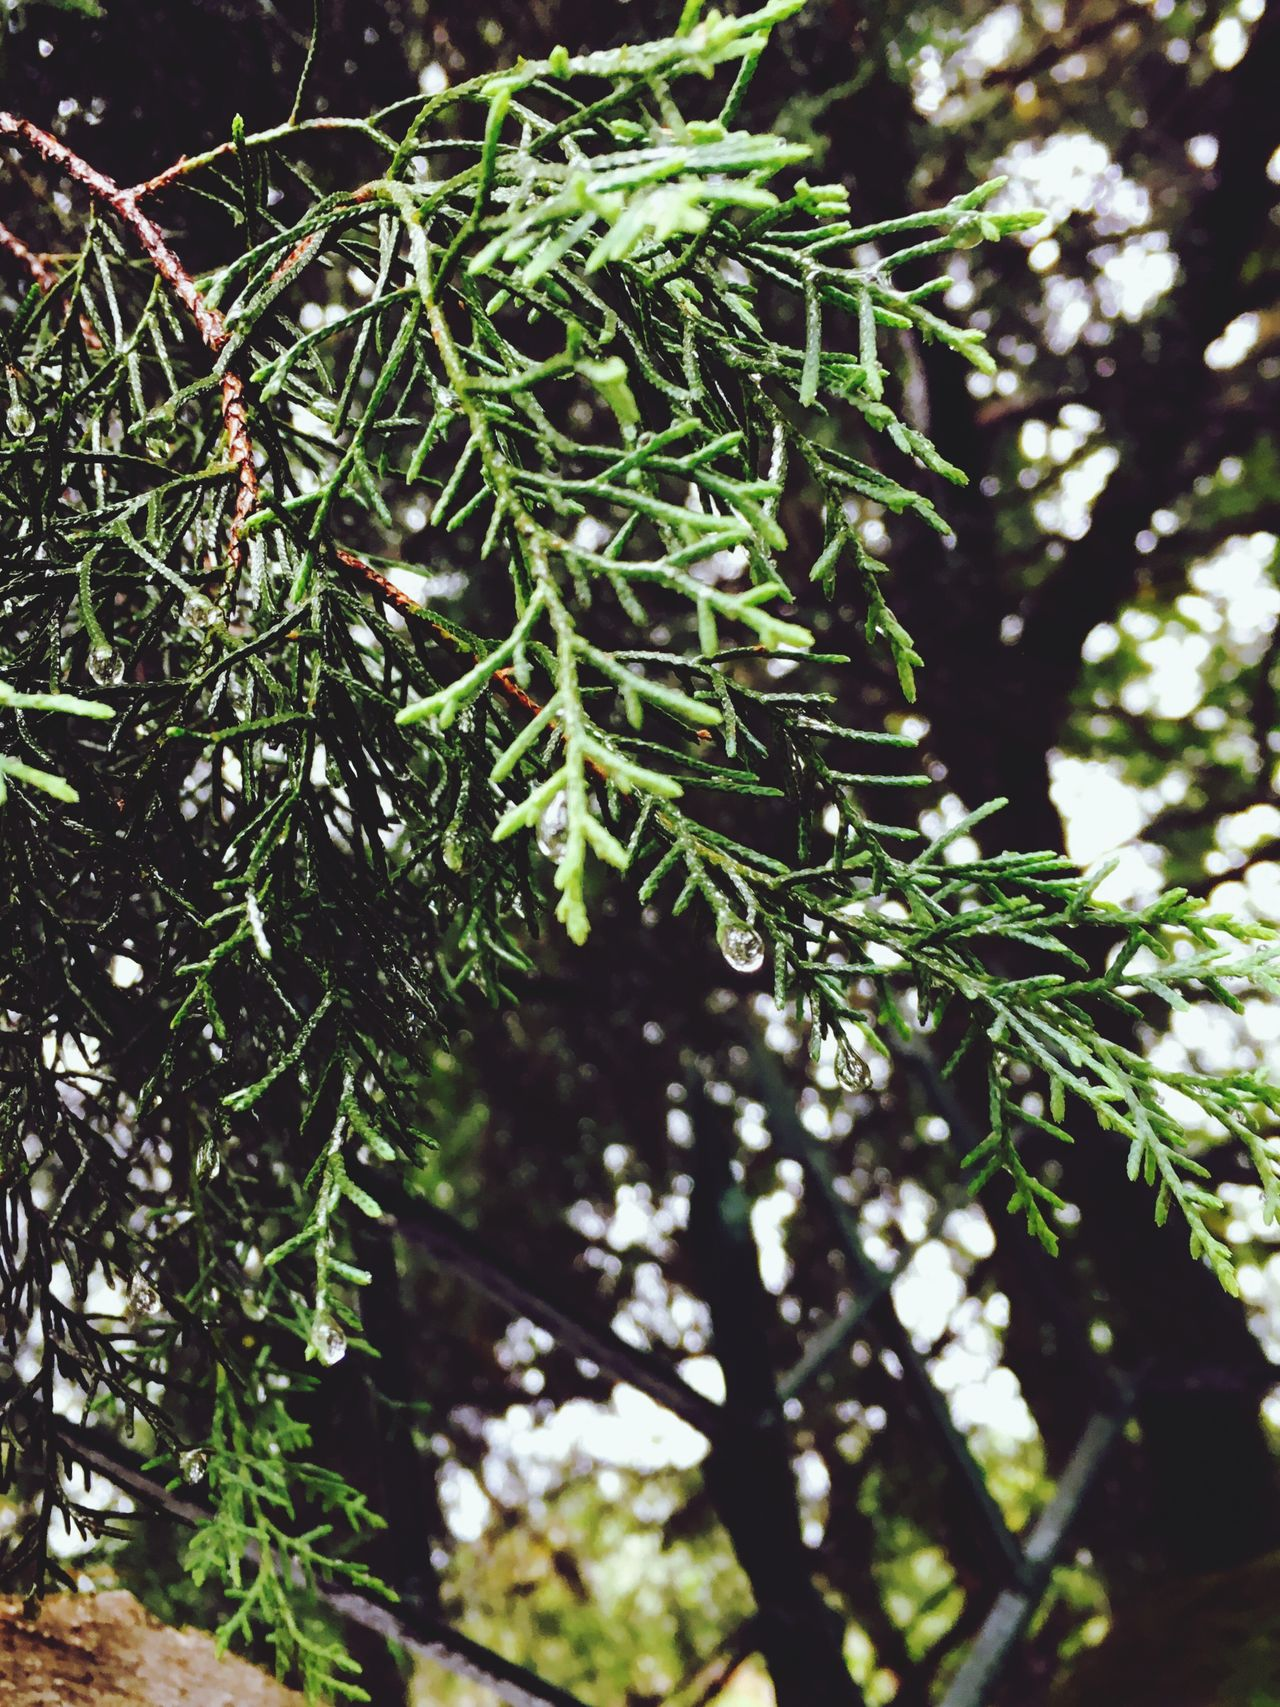 Nature Growth Tree Green Color Beauty In Nature No People Branch Day Outdoors Forest Close-up Needle - Plant Part Needle Freshness